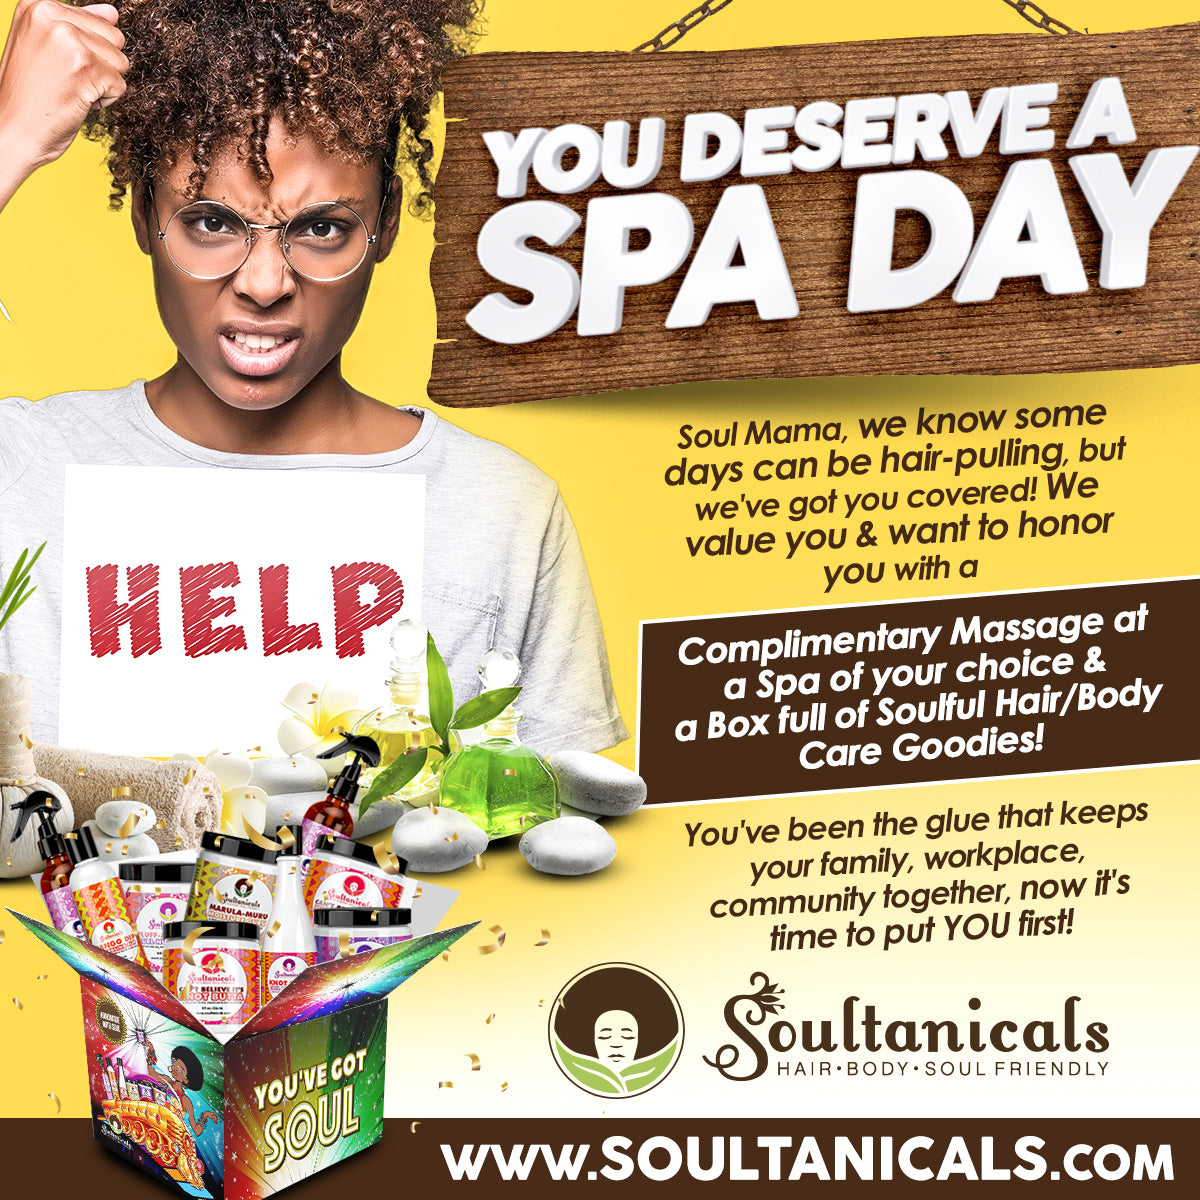 Win a FREE Day of Pampering & Hair/Body/Soul Care Goodies on Us!